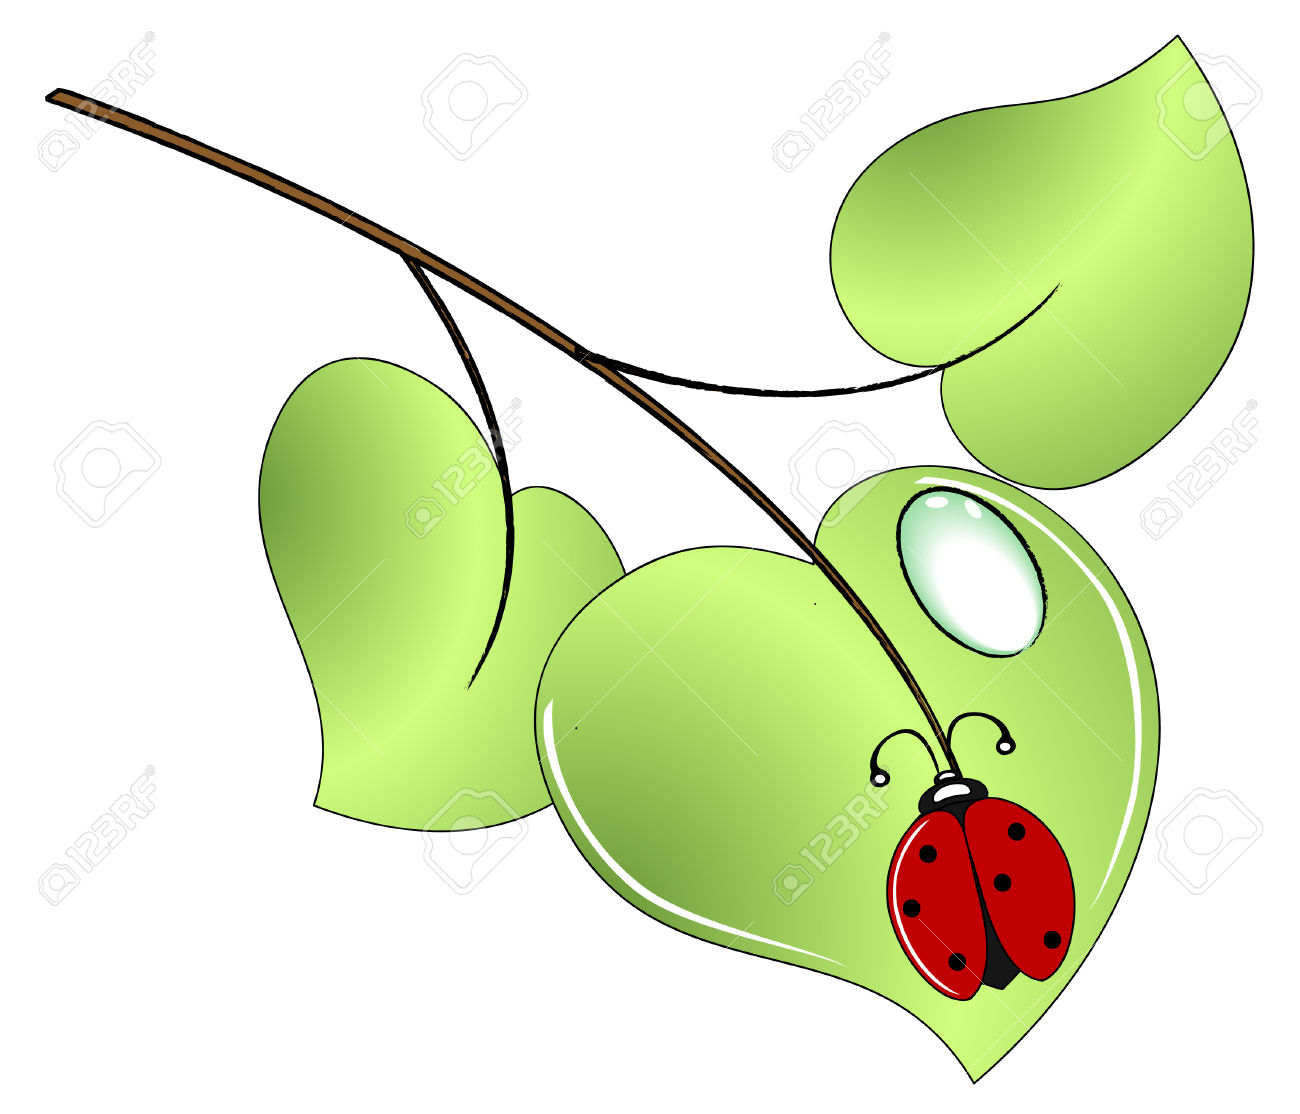 Bugs in a tree clipart.